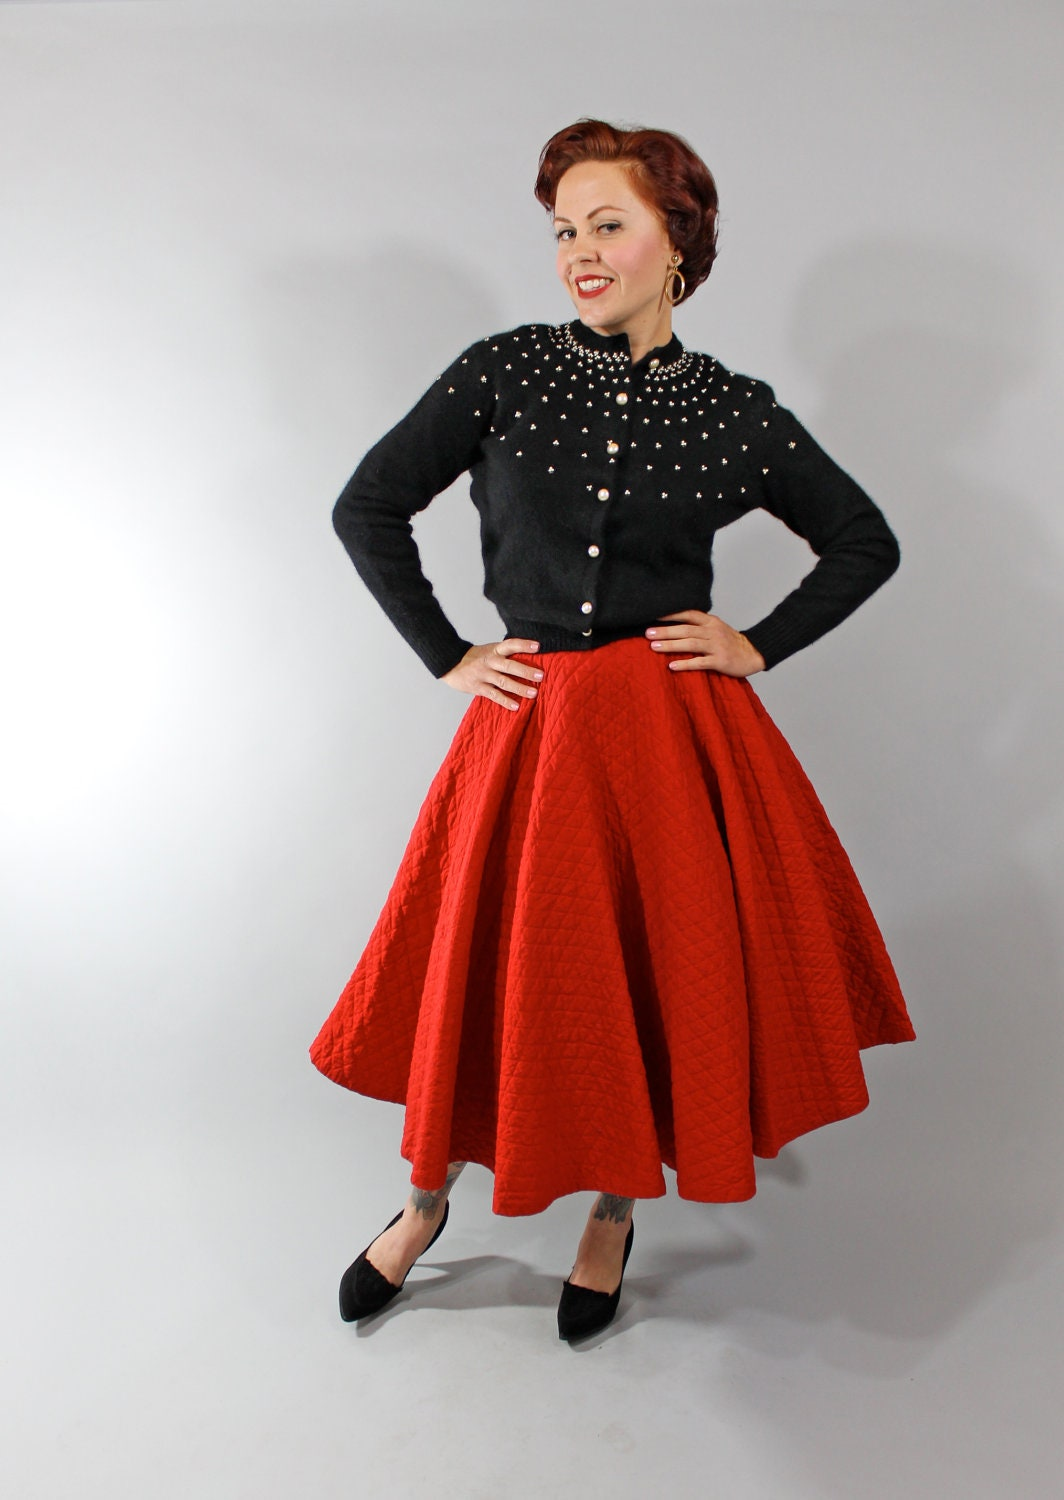 1950s Vintage Skirt Winter Fashion Bright Red Quilted 50s